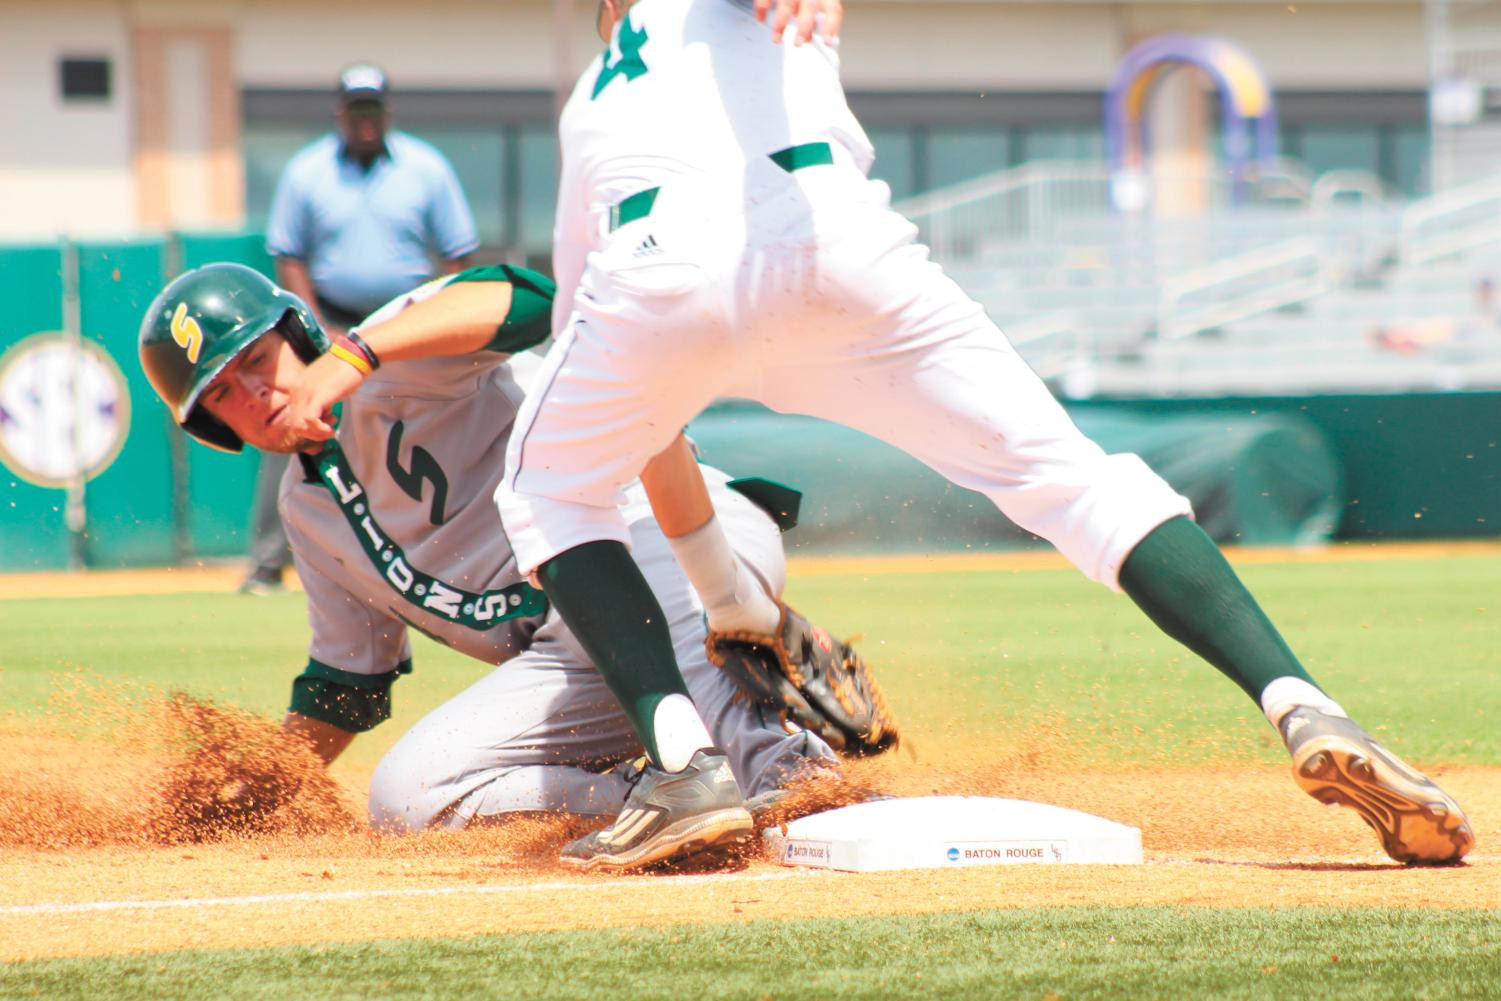 Drew Avans, a 2018 alumnus, slides into third base in the 2016 3-2 win in the Baton Rouge Regional Tournament. The Lions finished 2016 with a university record of 40 wins. Avans currently plays for the Tulsa Drillers, the Double-A affiliate for Los Angeles.